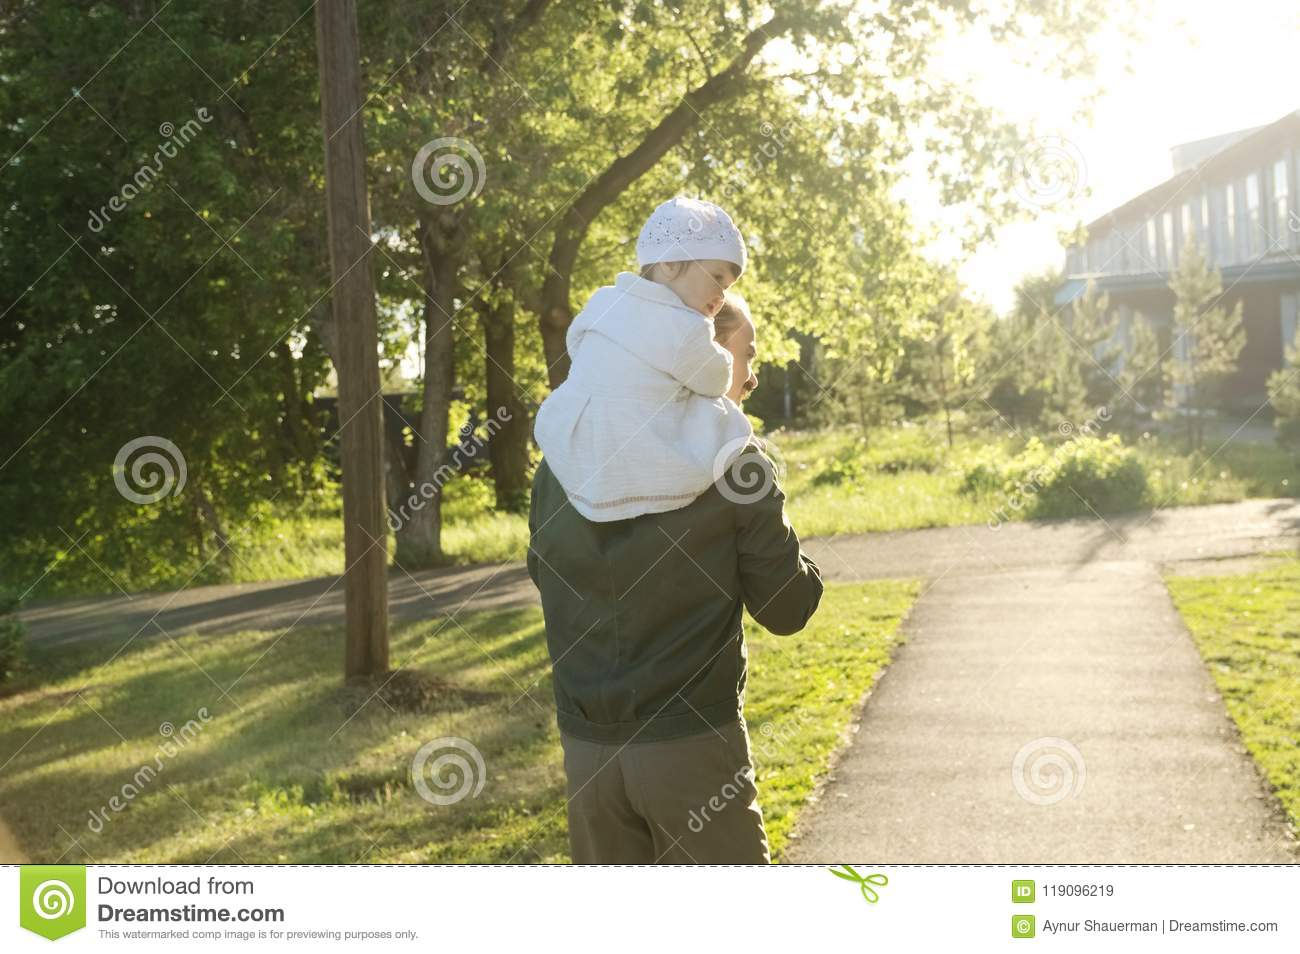 Father with daughter baby on shoulders walking away in park at sunny day. Family lifestyle portrait